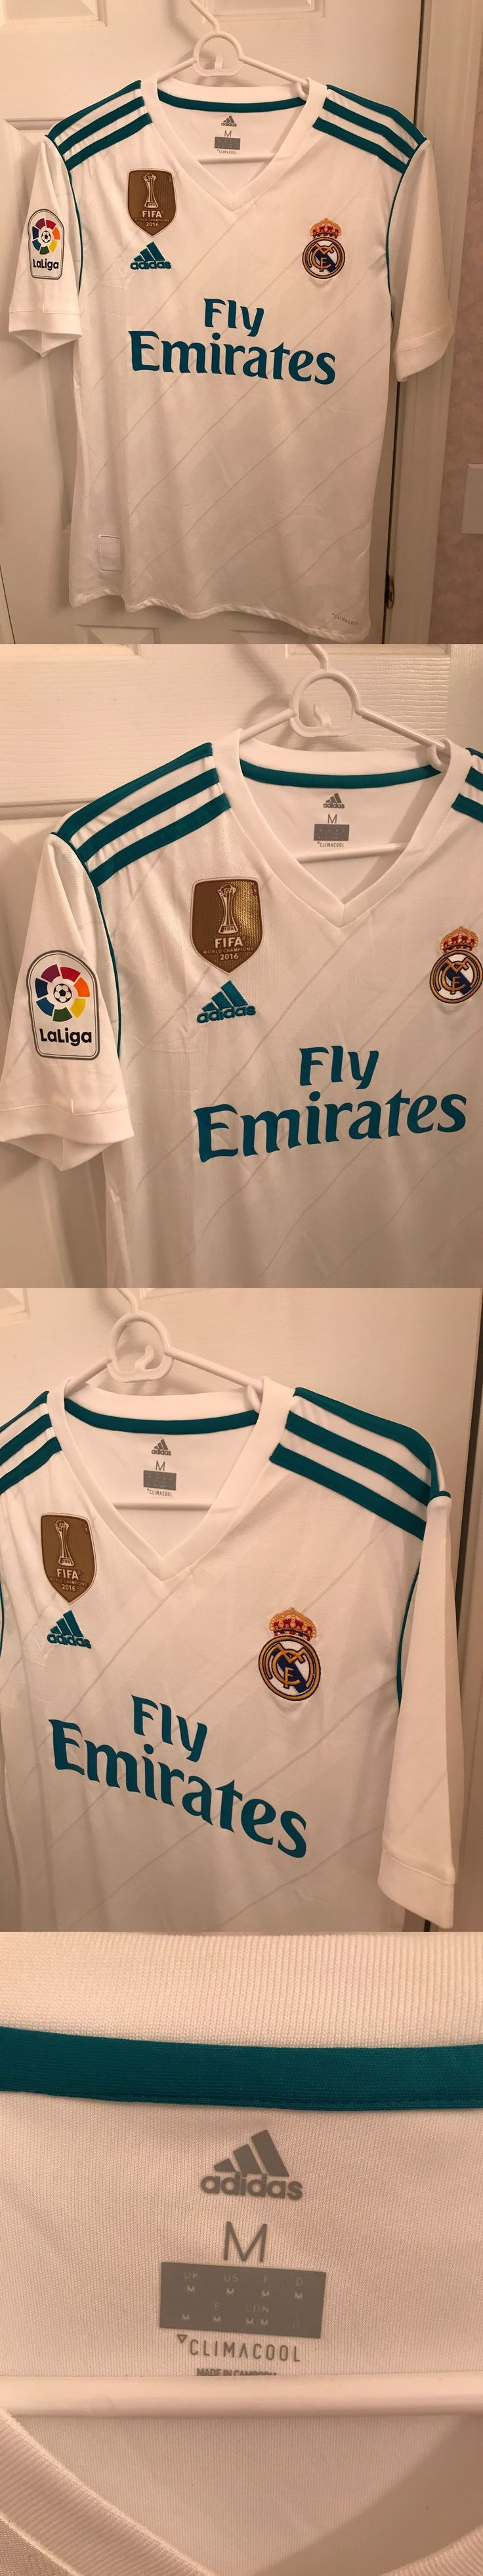 Soccer-International Clubs 2887: Adidas Mens Real Madrid 17 18 Home Soccer Jersey Shirt. New Size Medium -> BUY IT NOW ONLY: $49.99 on eBay!